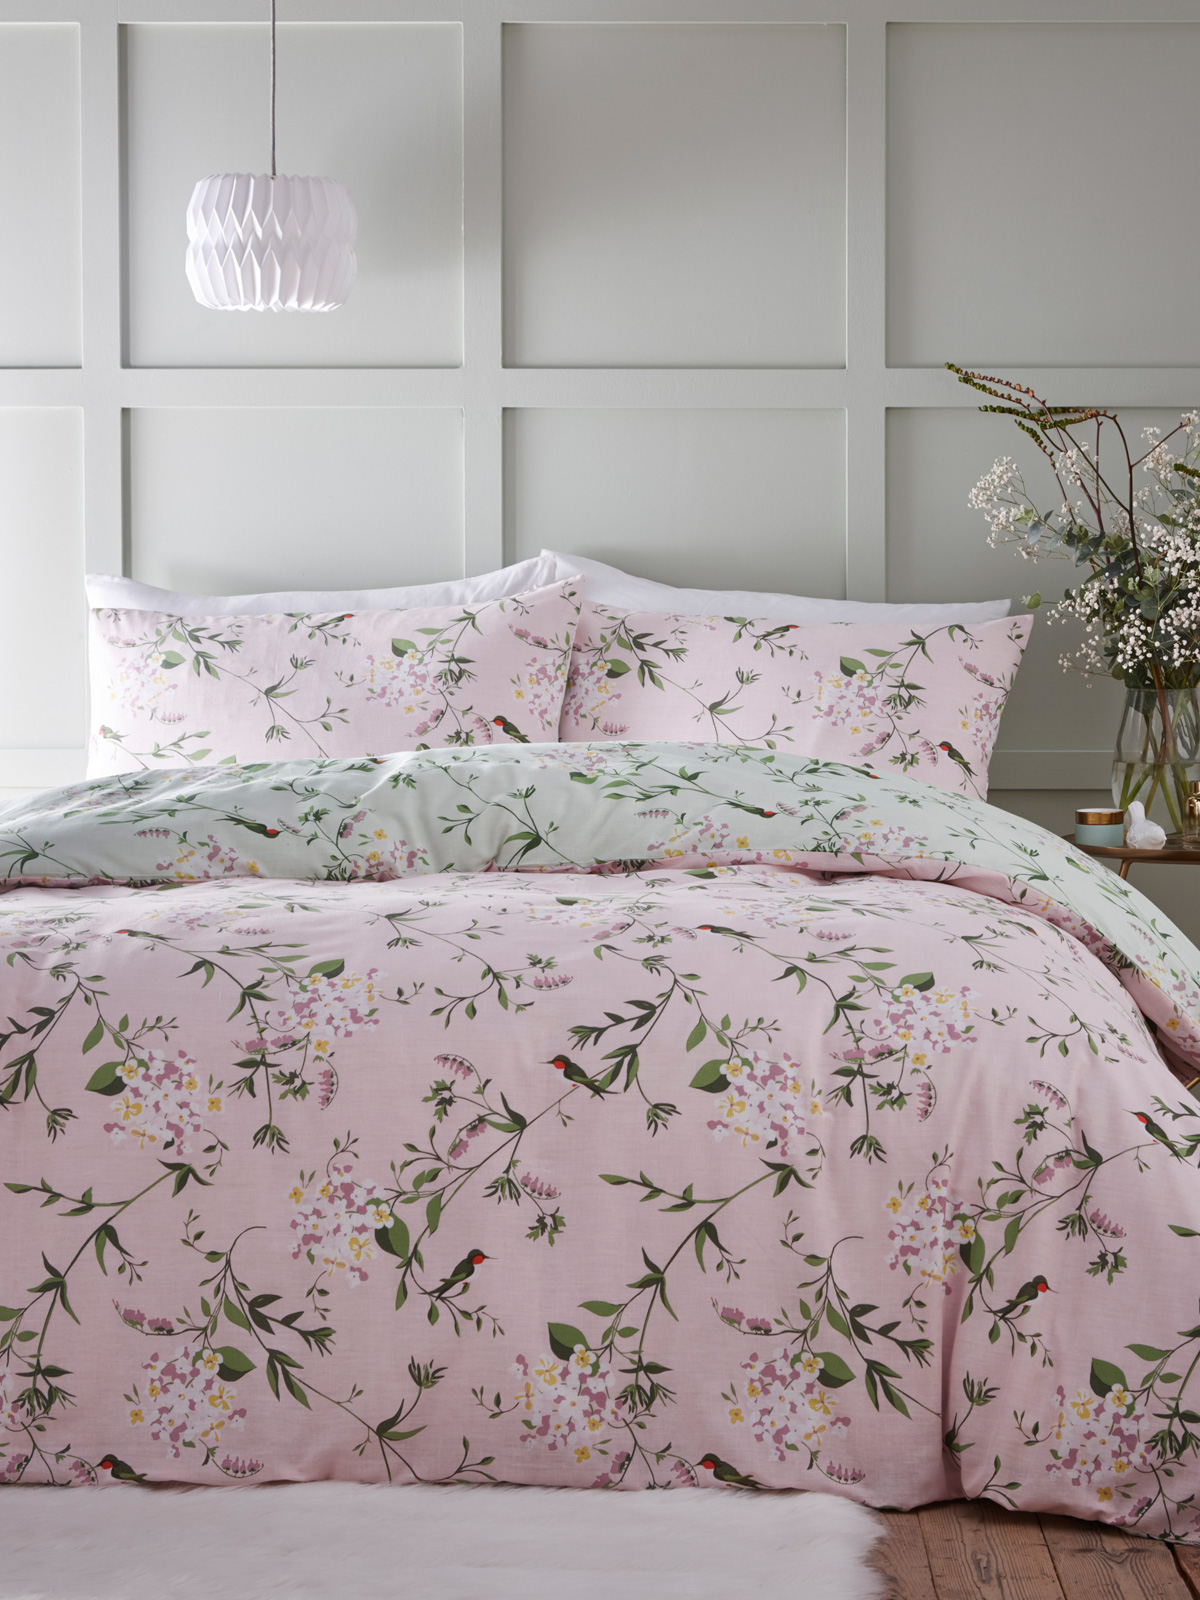 Portfolio Hummingbird King Size Duvet Cover Set